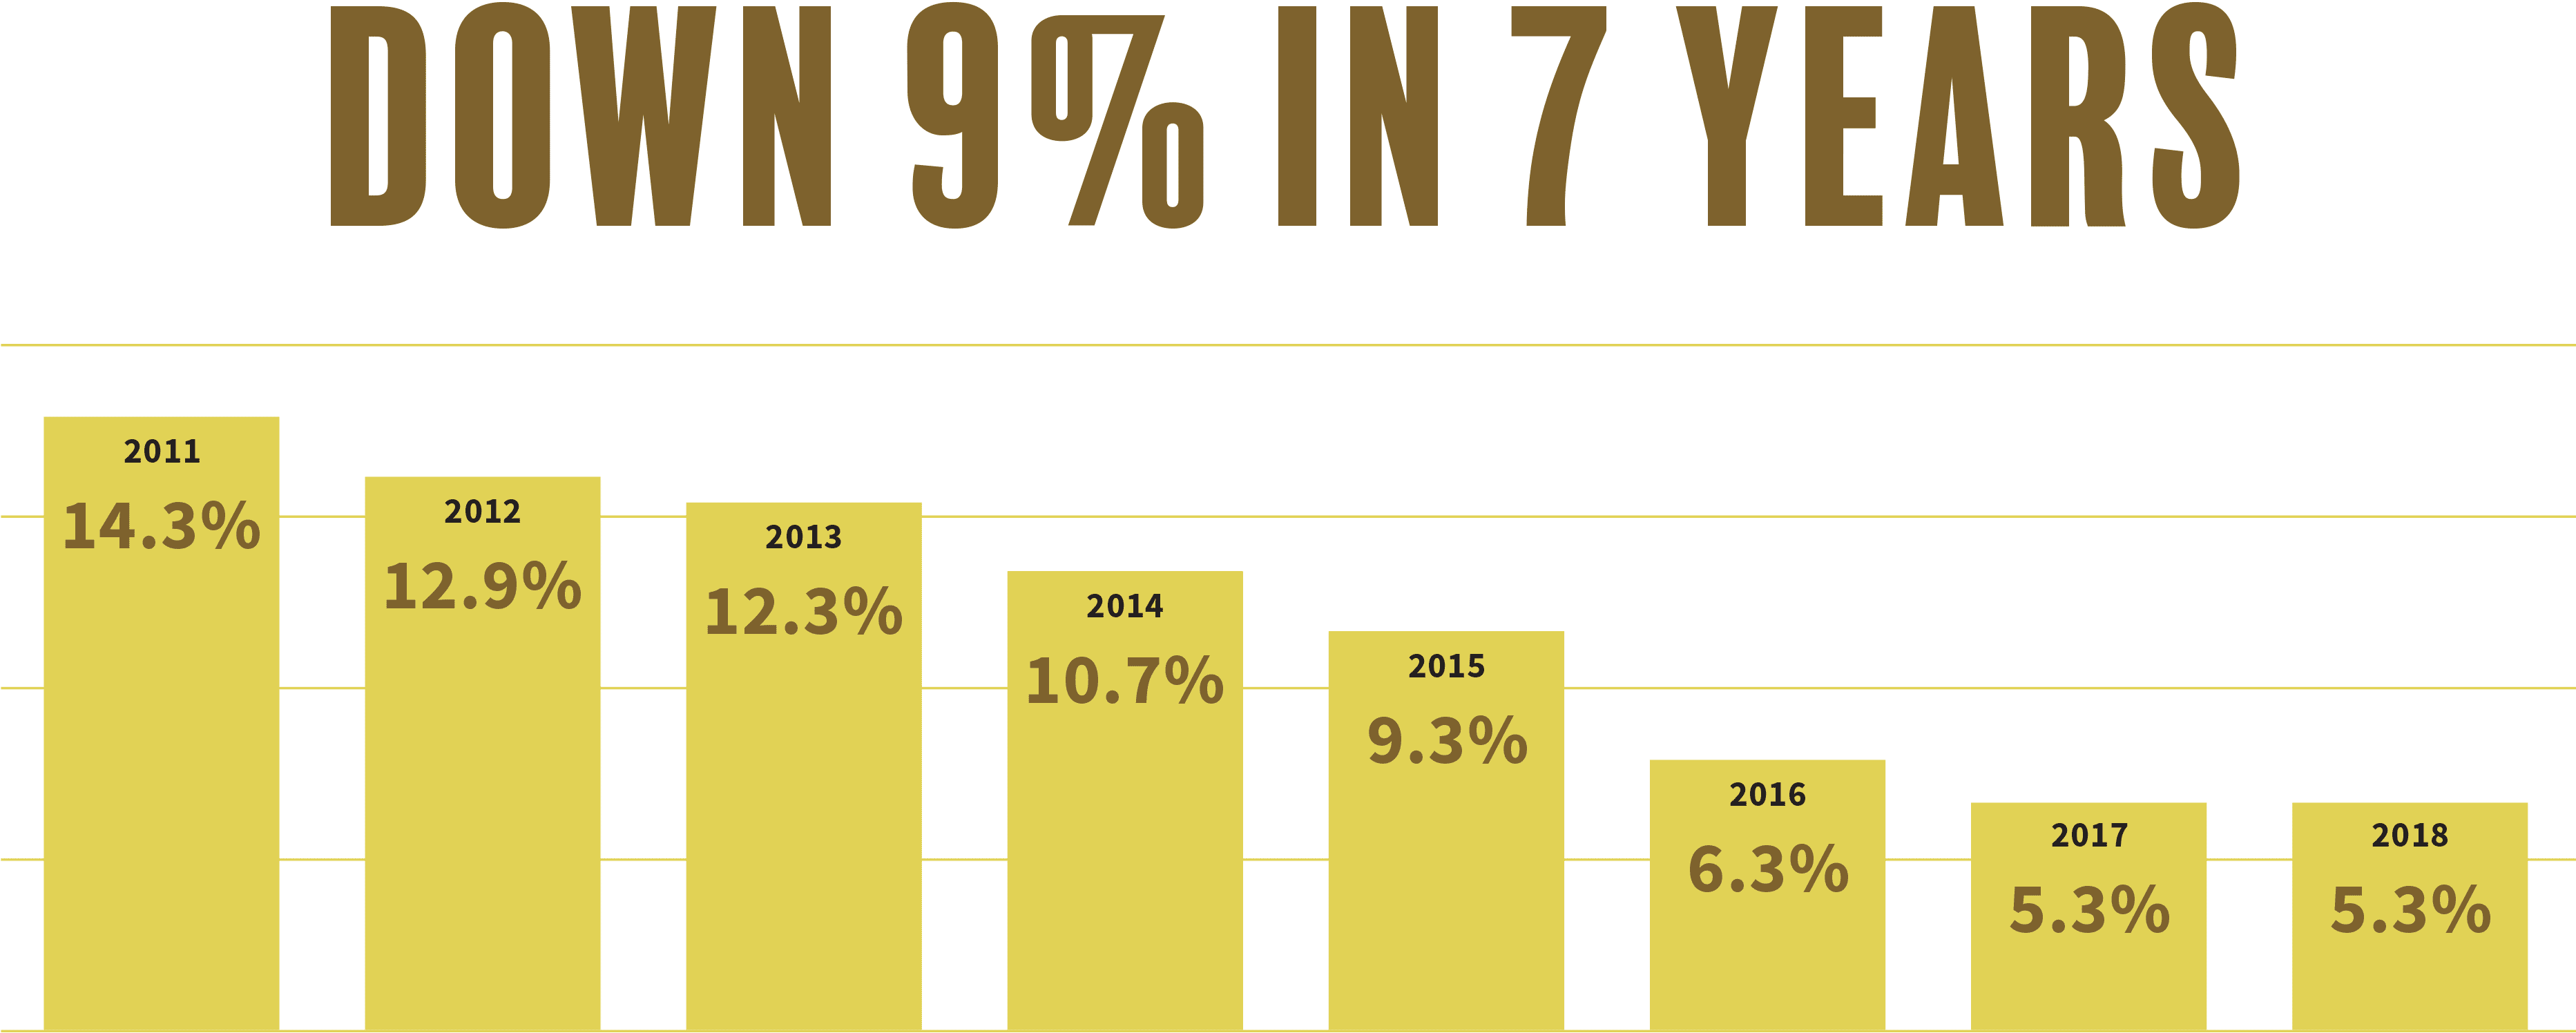 Bar graph indicating that the unemployment rate in Waterbury CT has decreased 9 percent in 7 years